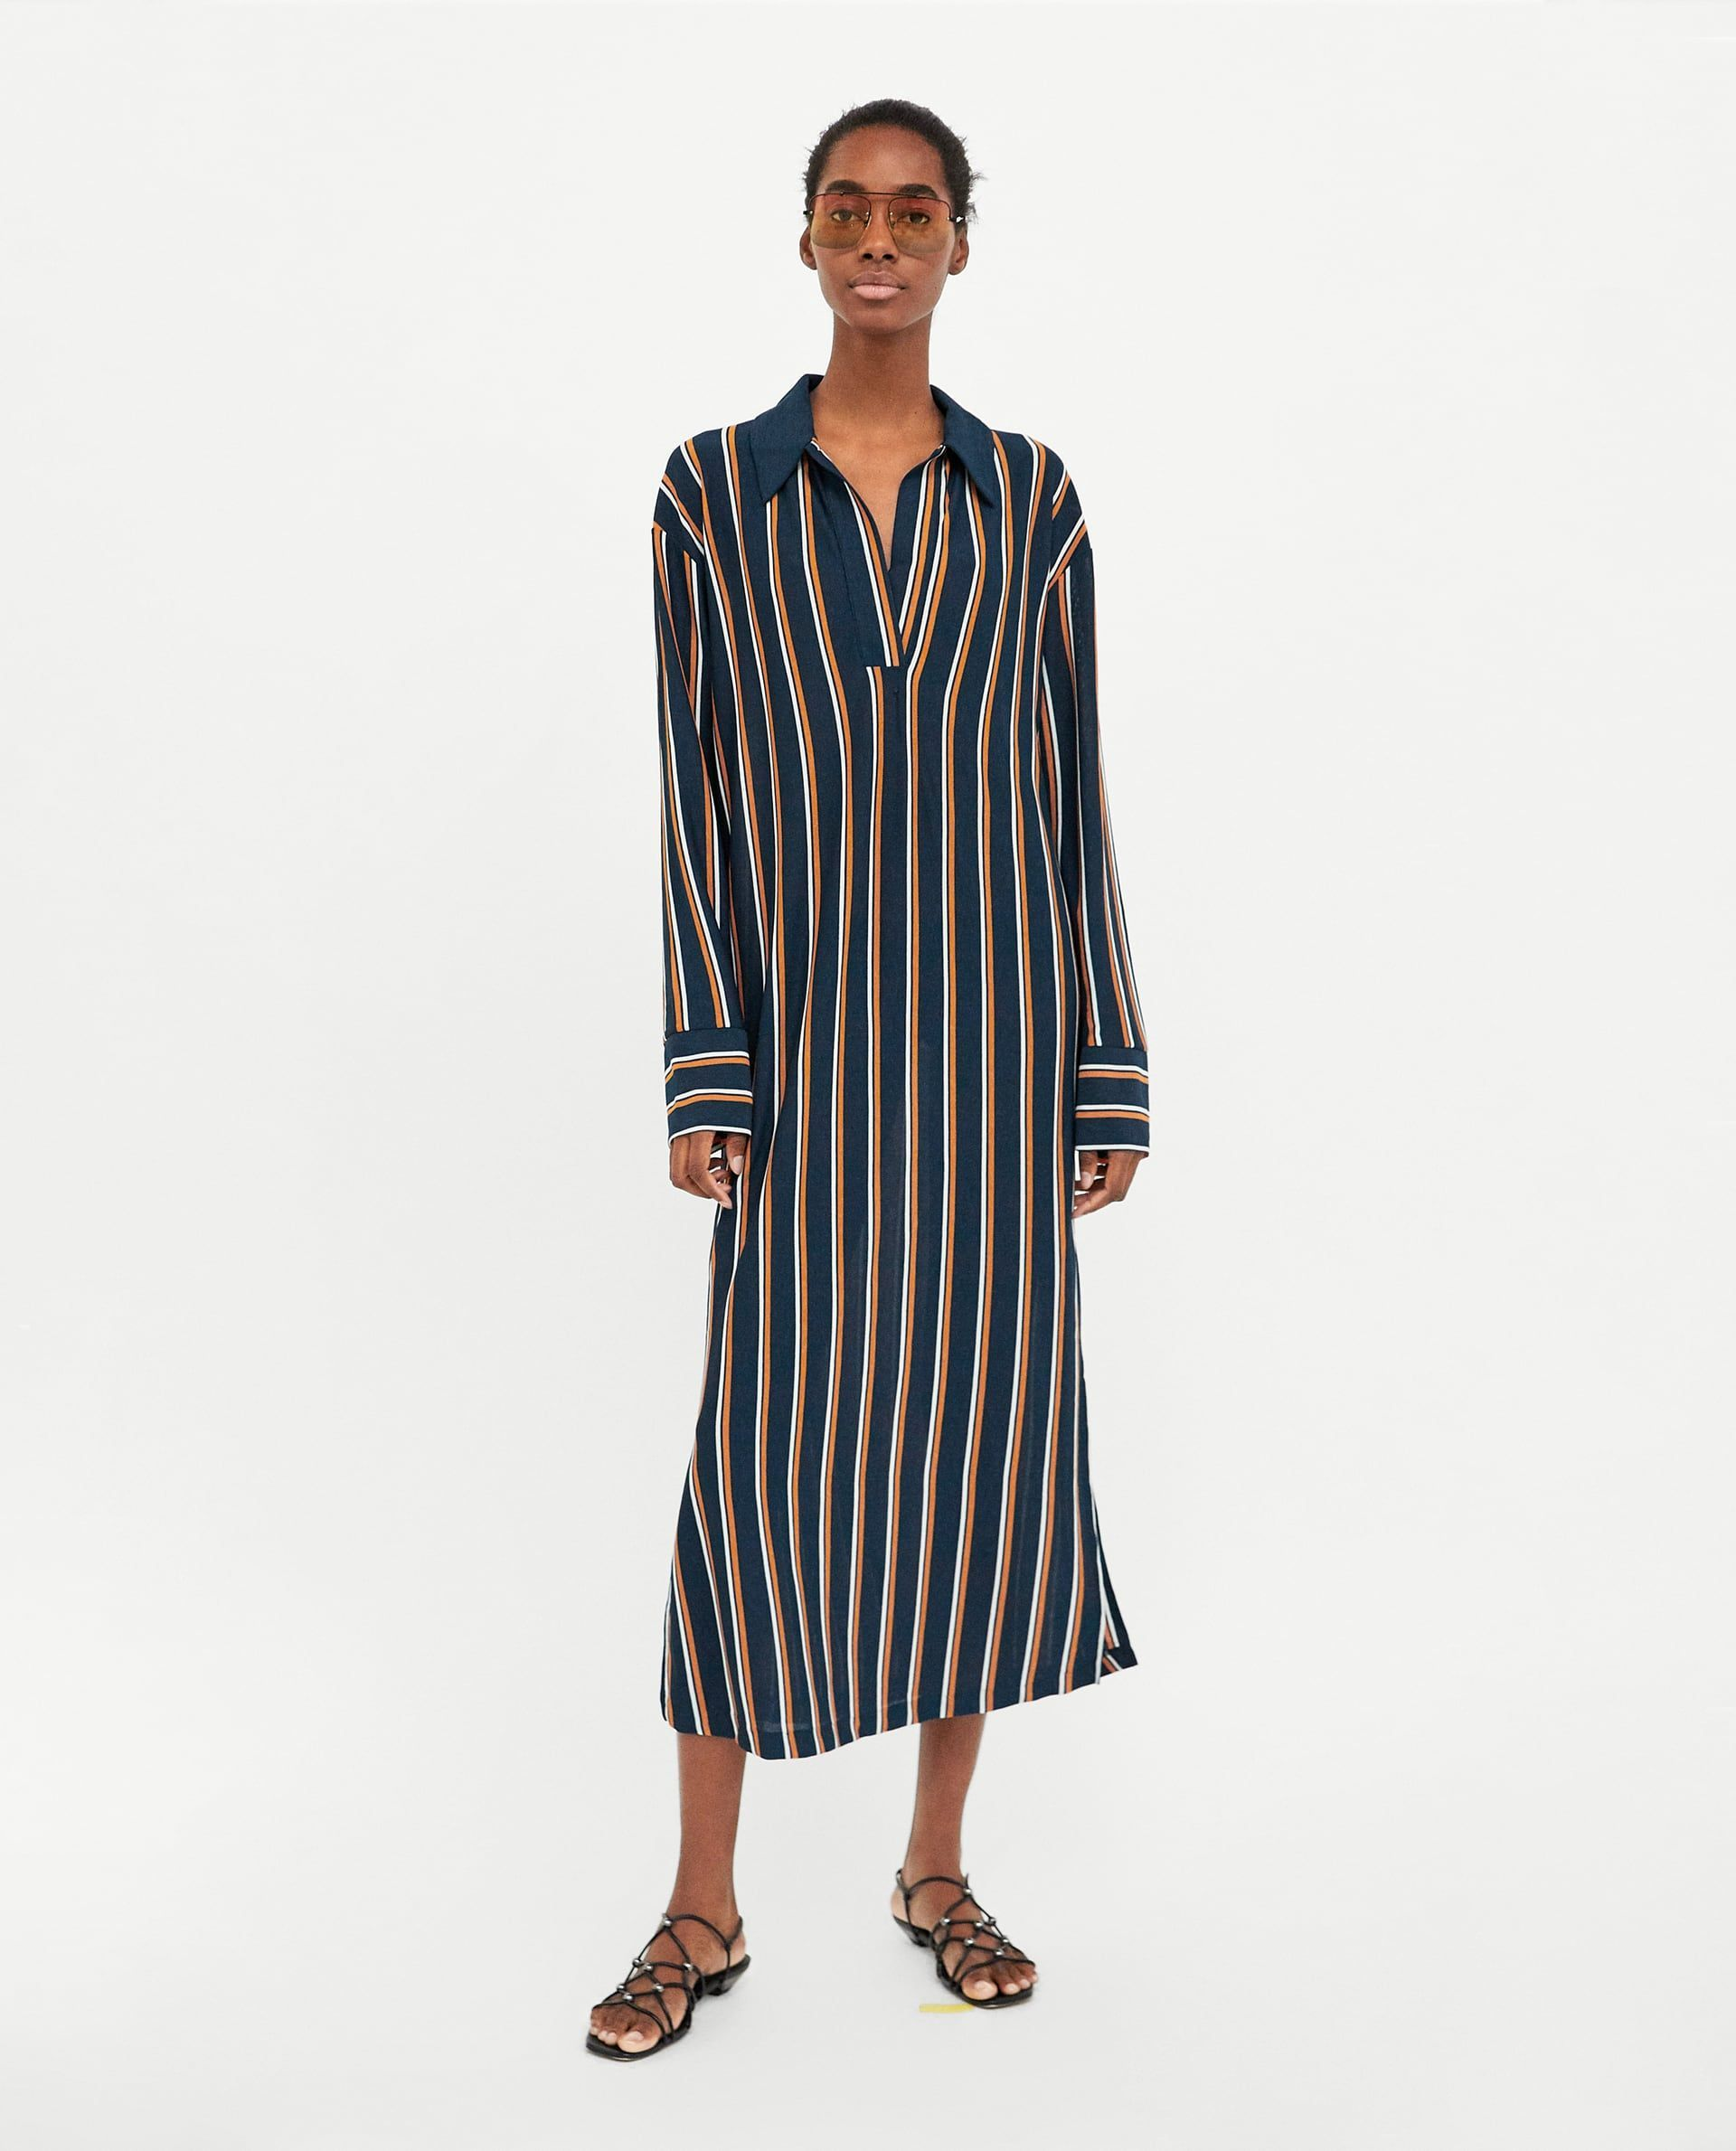 d921bd3f90 Zara's Got Your Midi-Dress Needs Sorted in 2019 | Things to Wear ...